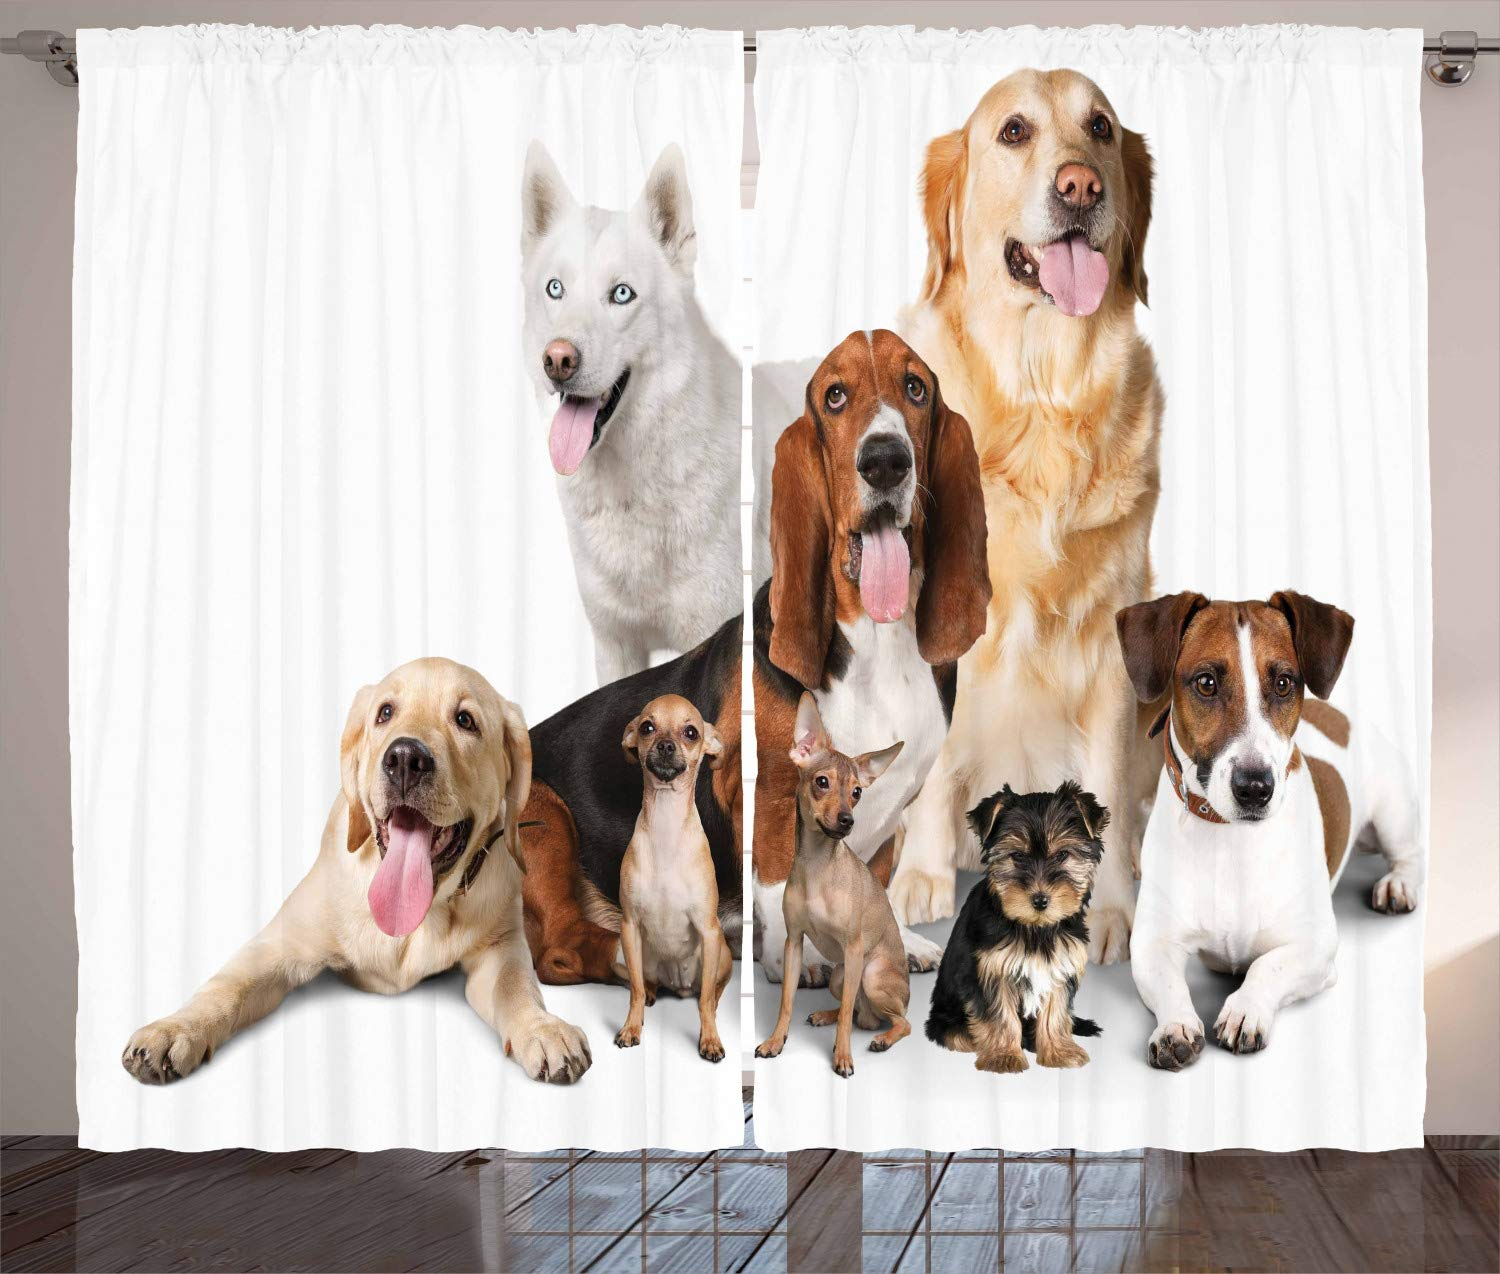 Group of Dogs Posing for Photo Shoot Portrait Togetherness Companionship Ambesonne Dog Lover Decor Collection 108 X 84 Inches Living Room Bedroom Curtain 2 Panels Set Brown Beige p/_10681/_108x84/_fba